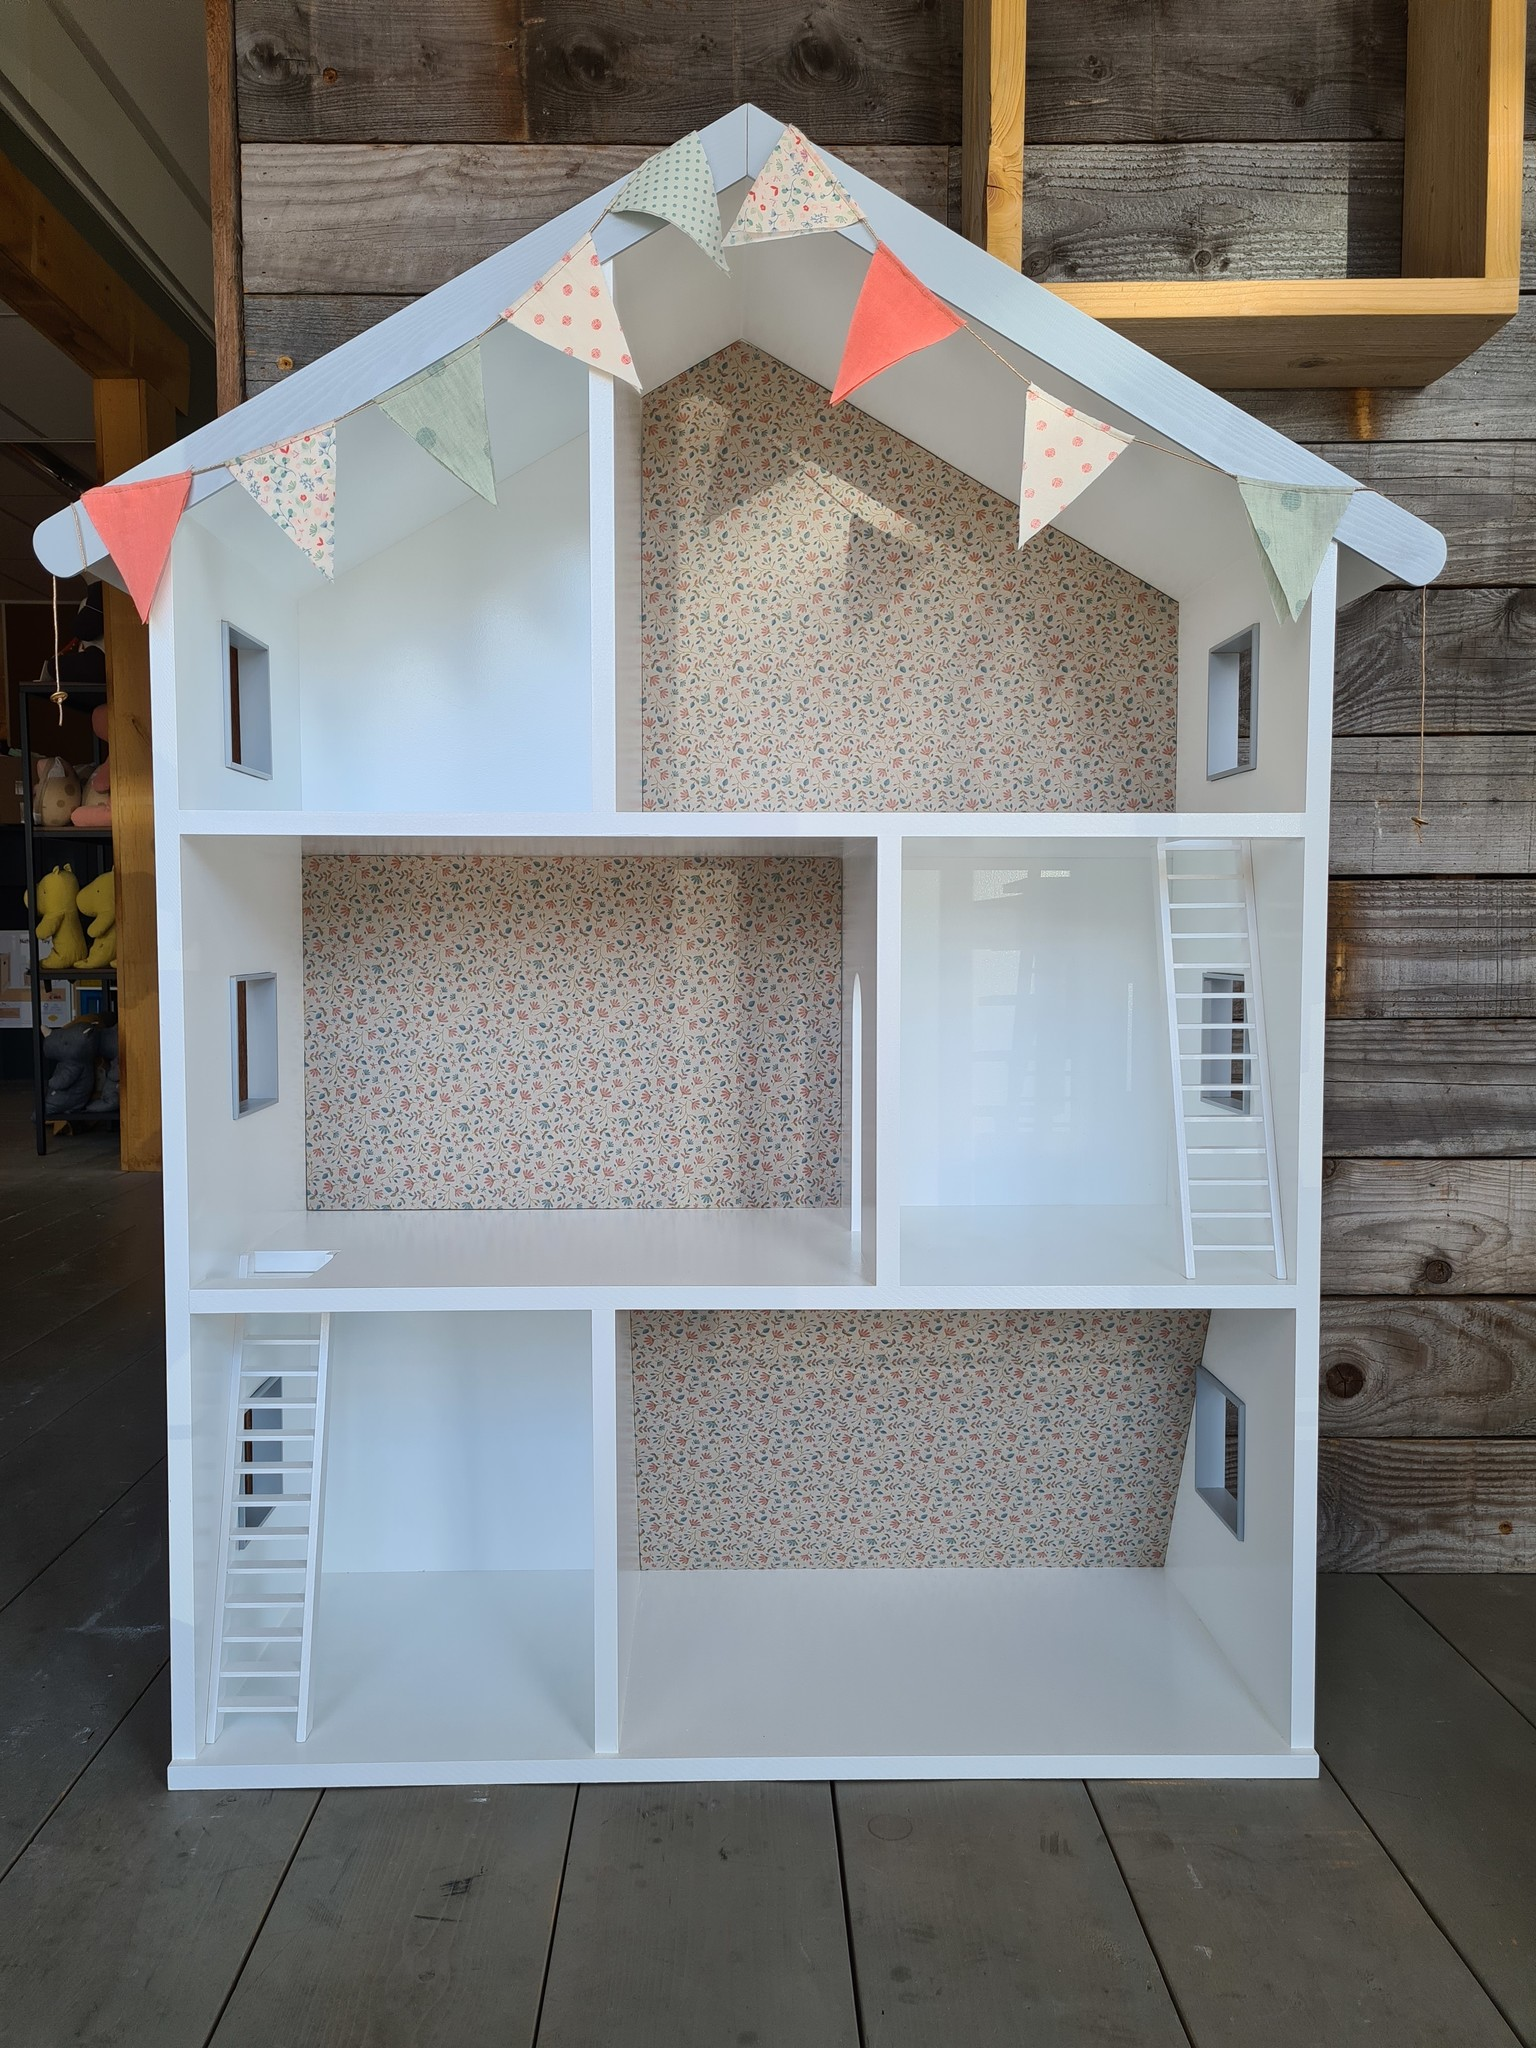 Maileg dollhouse with stairs and wallpaper-1